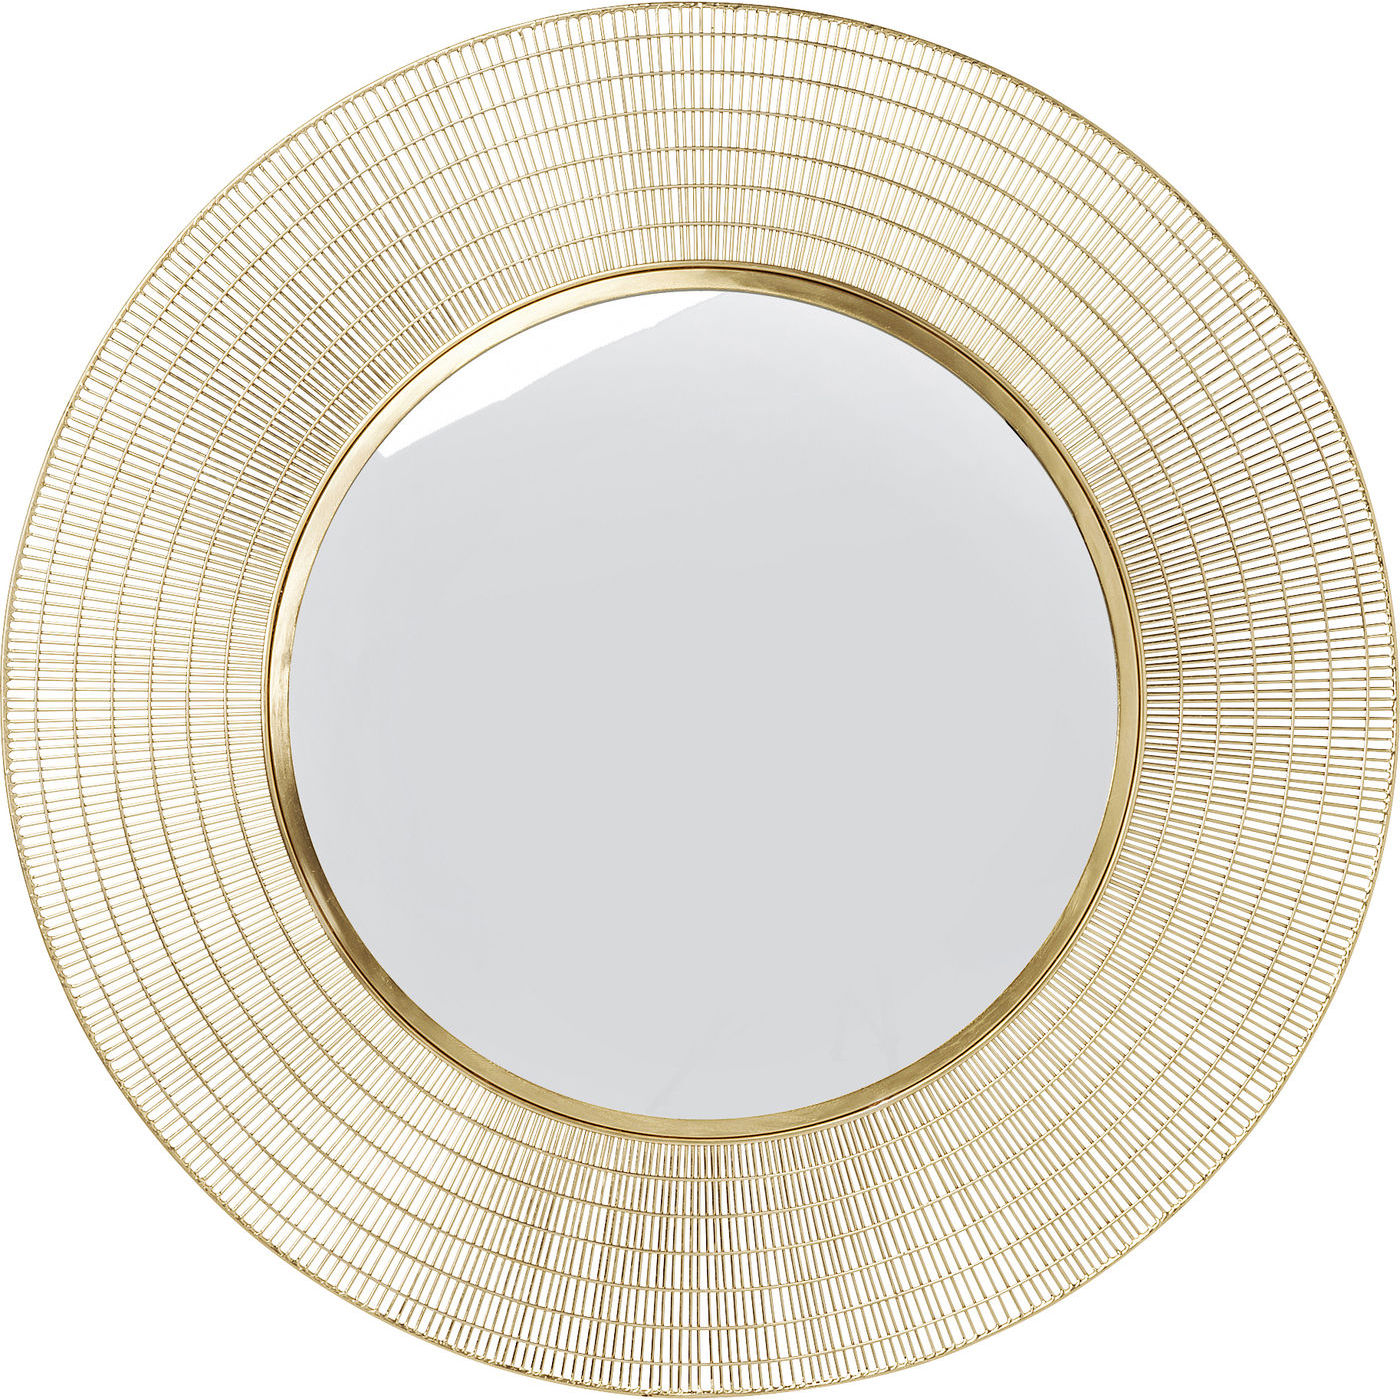 Image of   KARE DESIGN Spejl, Nimbus Brass